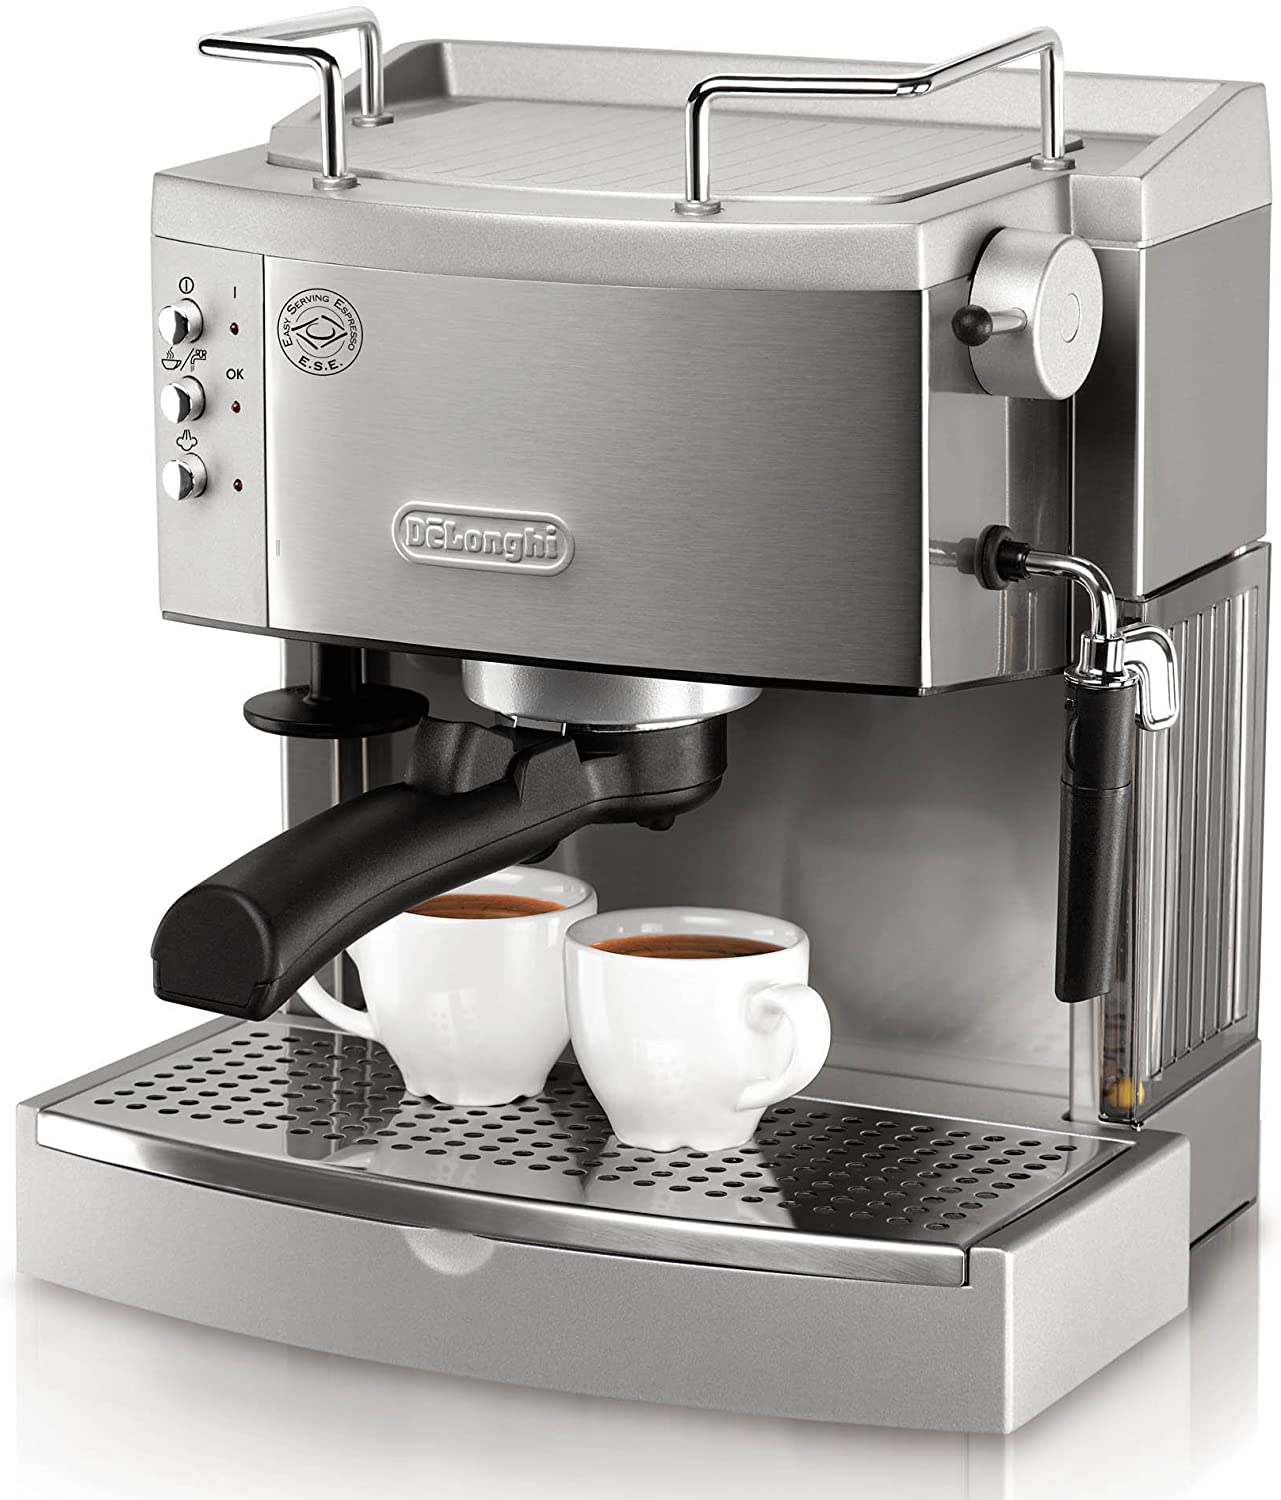 silver machine with 2 espresso cups